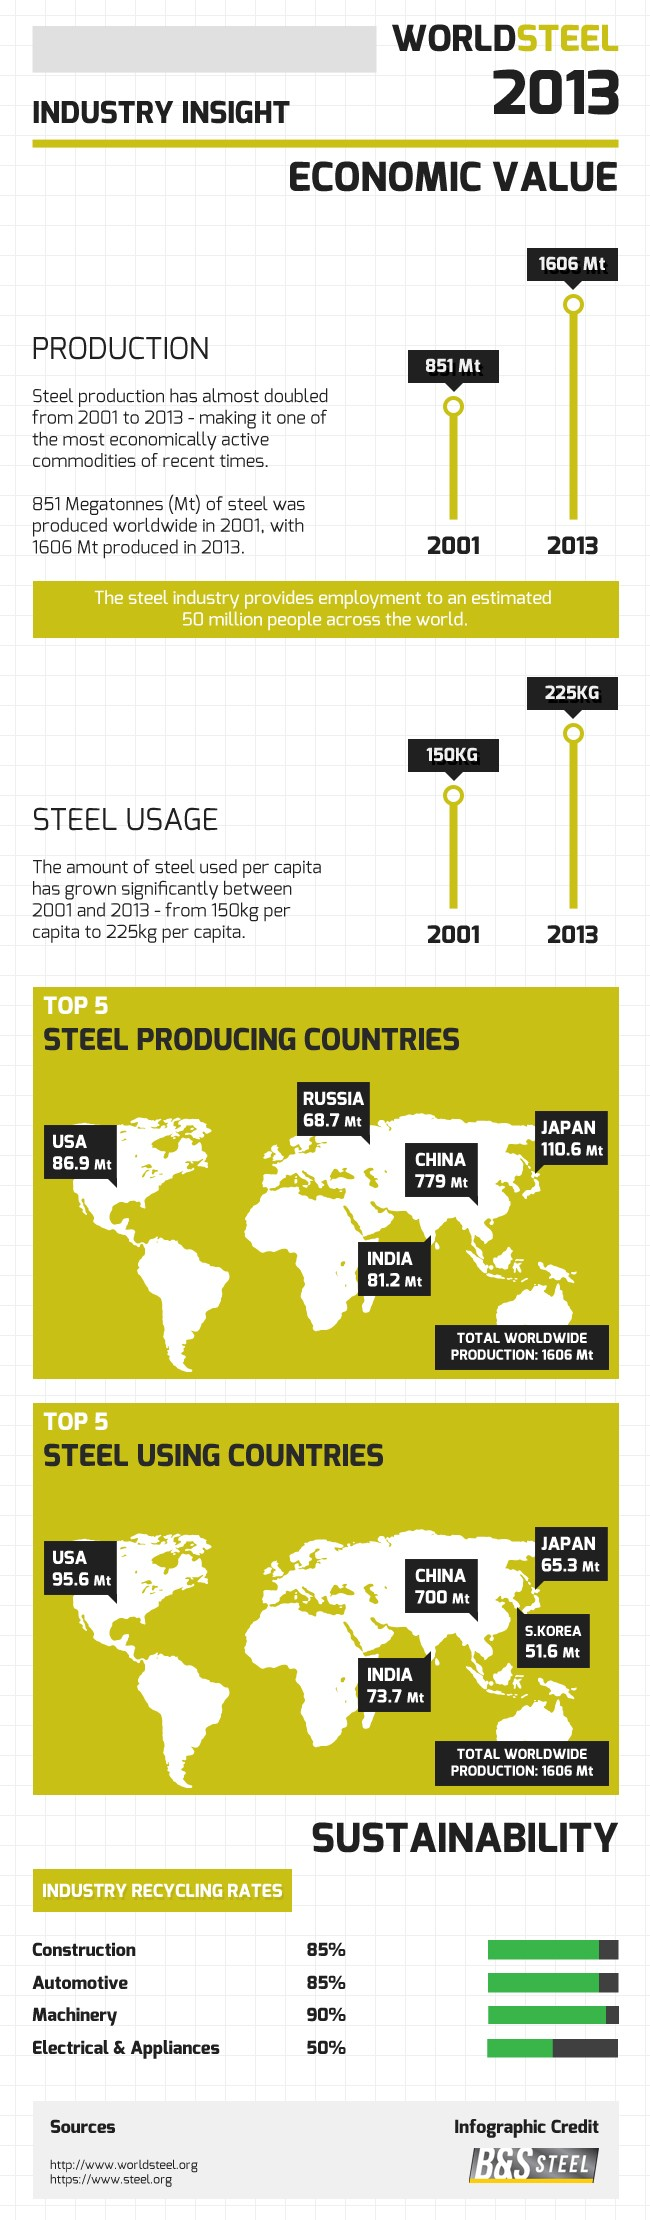 Steel Industry Insight